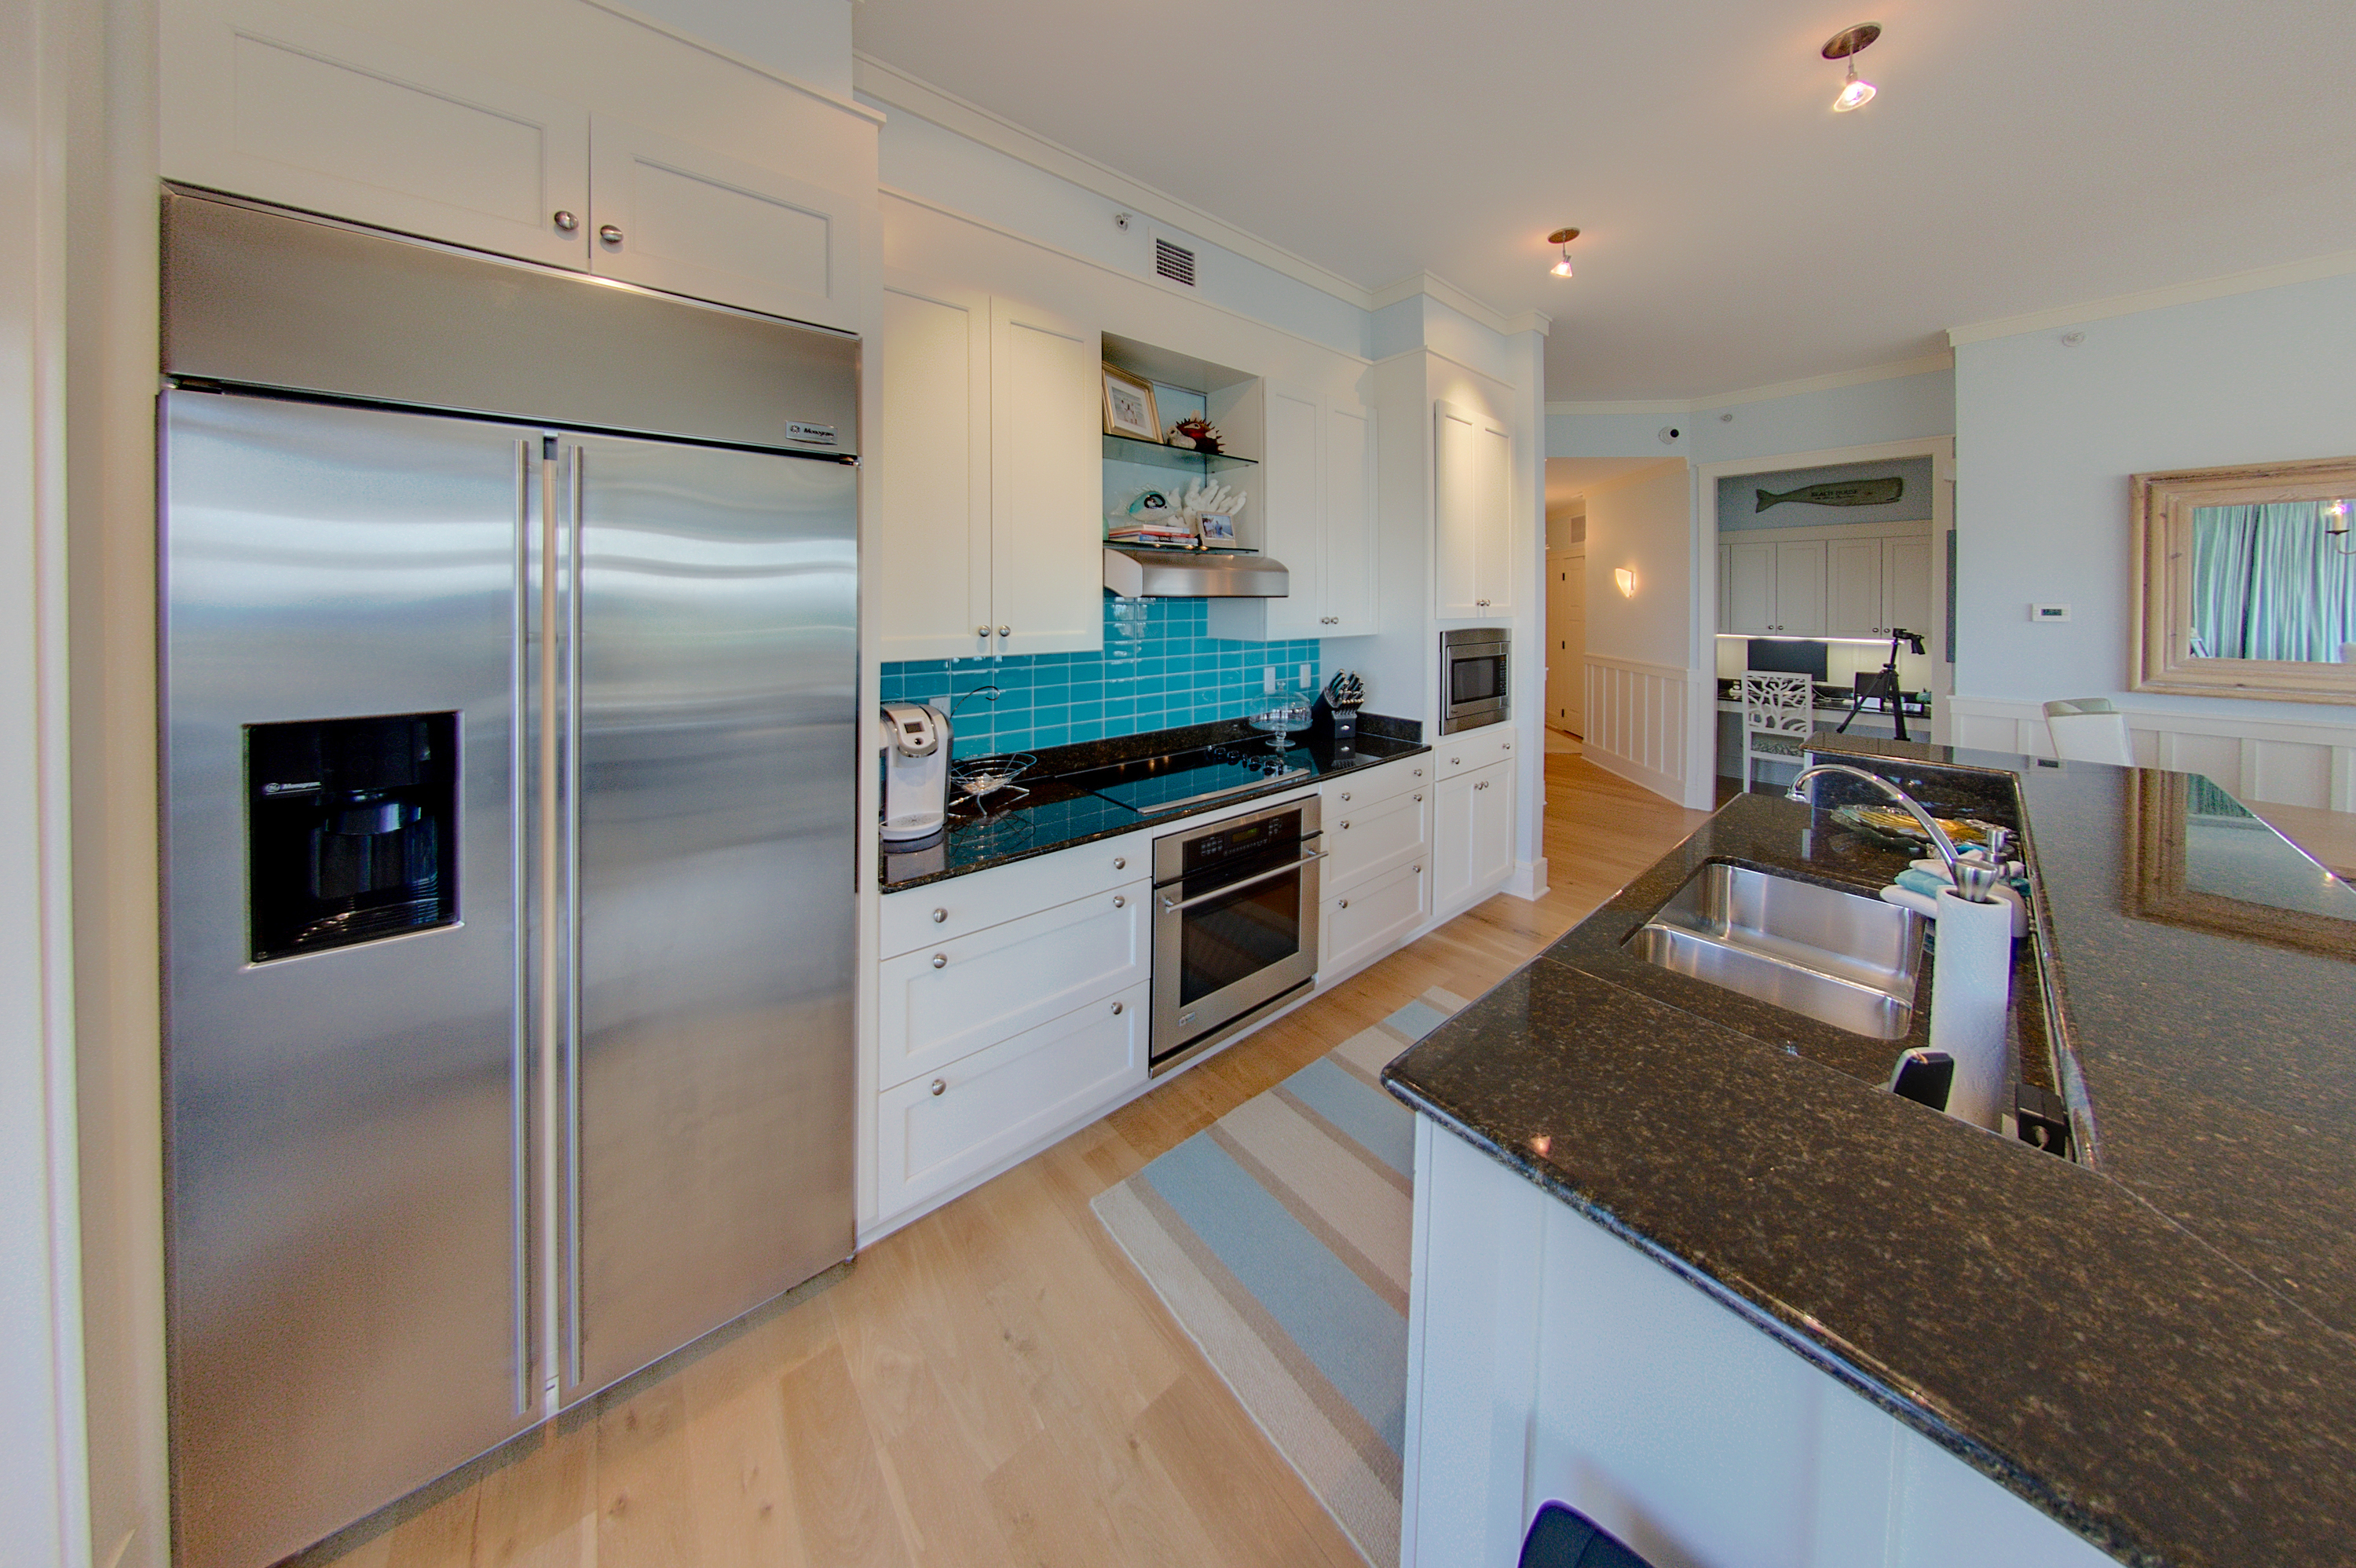 All stainless appliances and a gorgeous tile accents